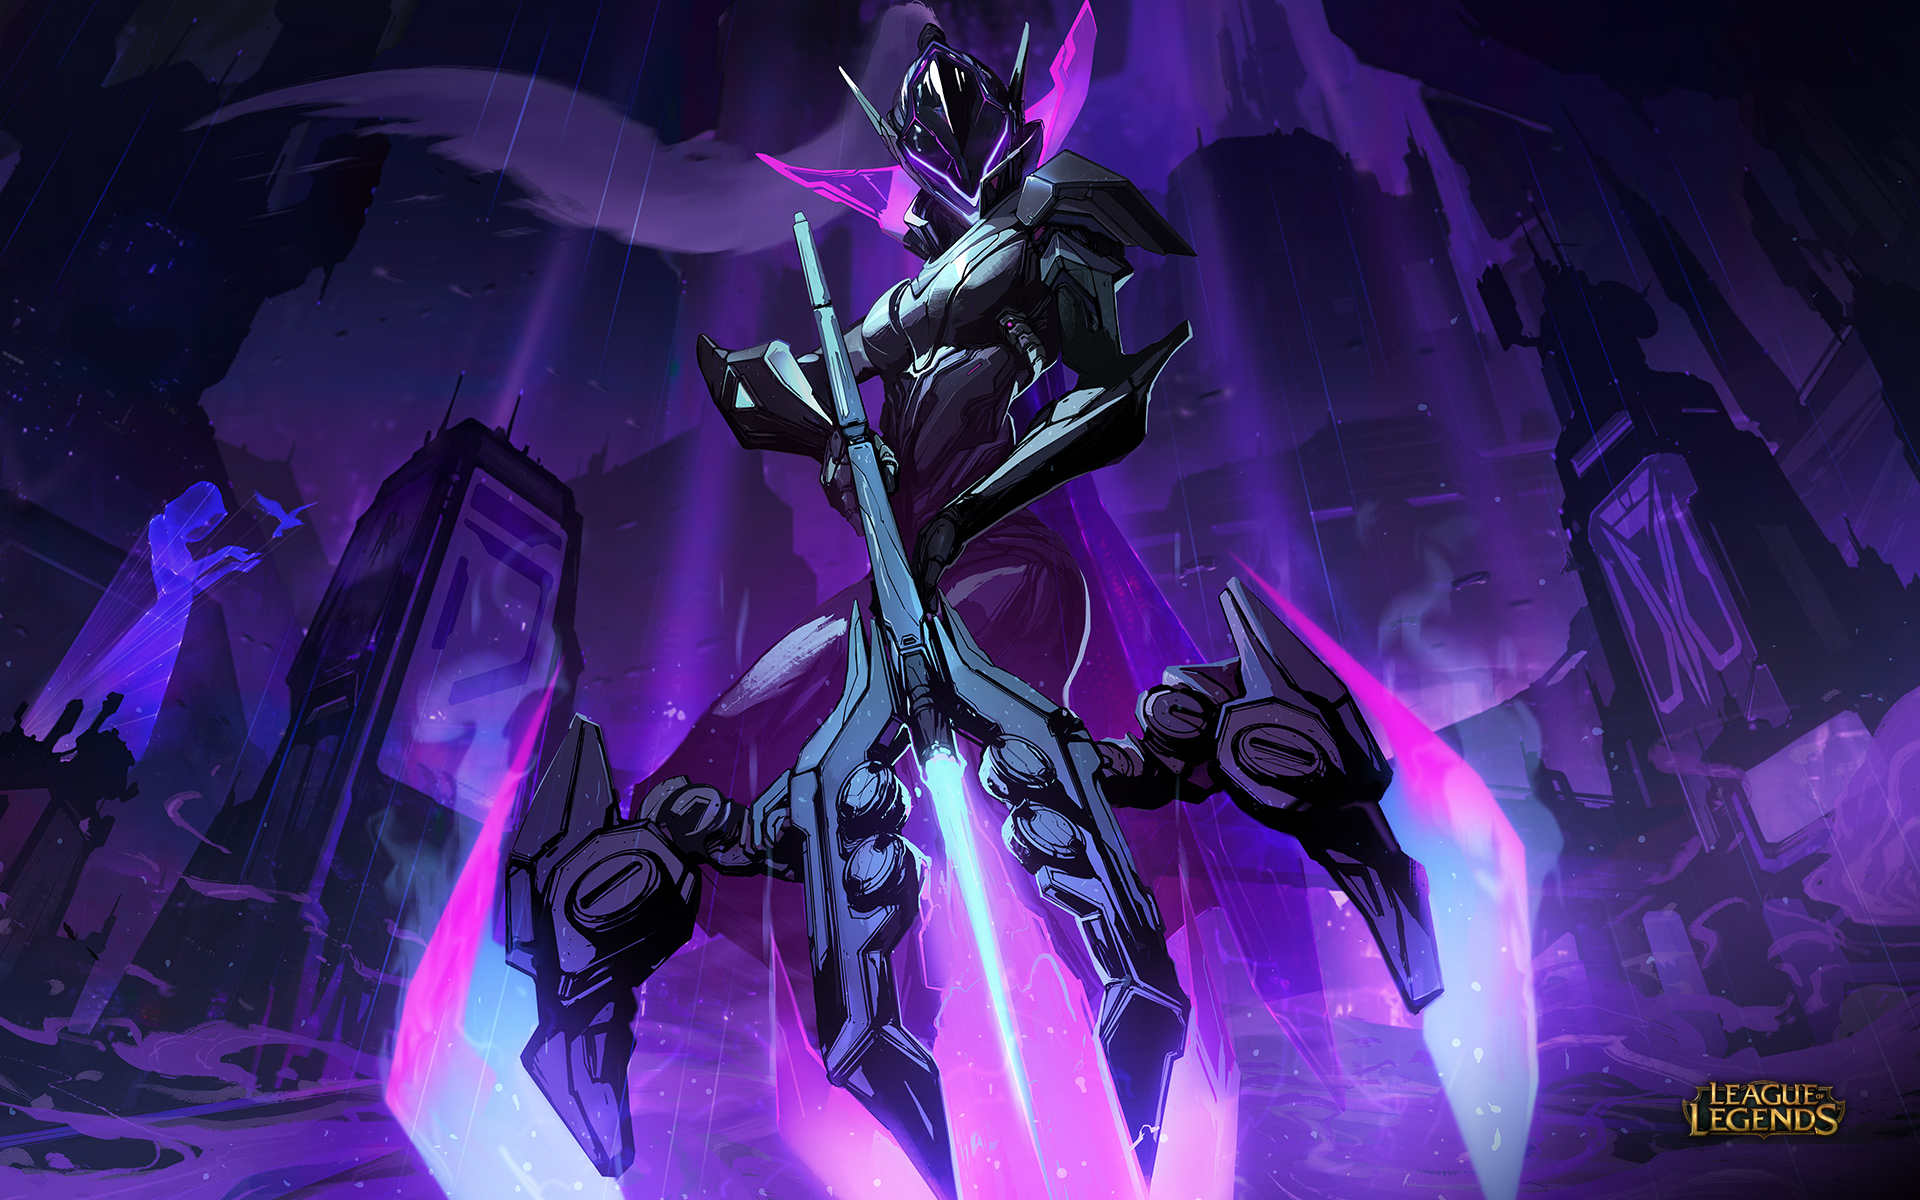 General 1920x1200 League of Legends Summoner's Rift Project Skins Vayne (League of Legends) Vayne